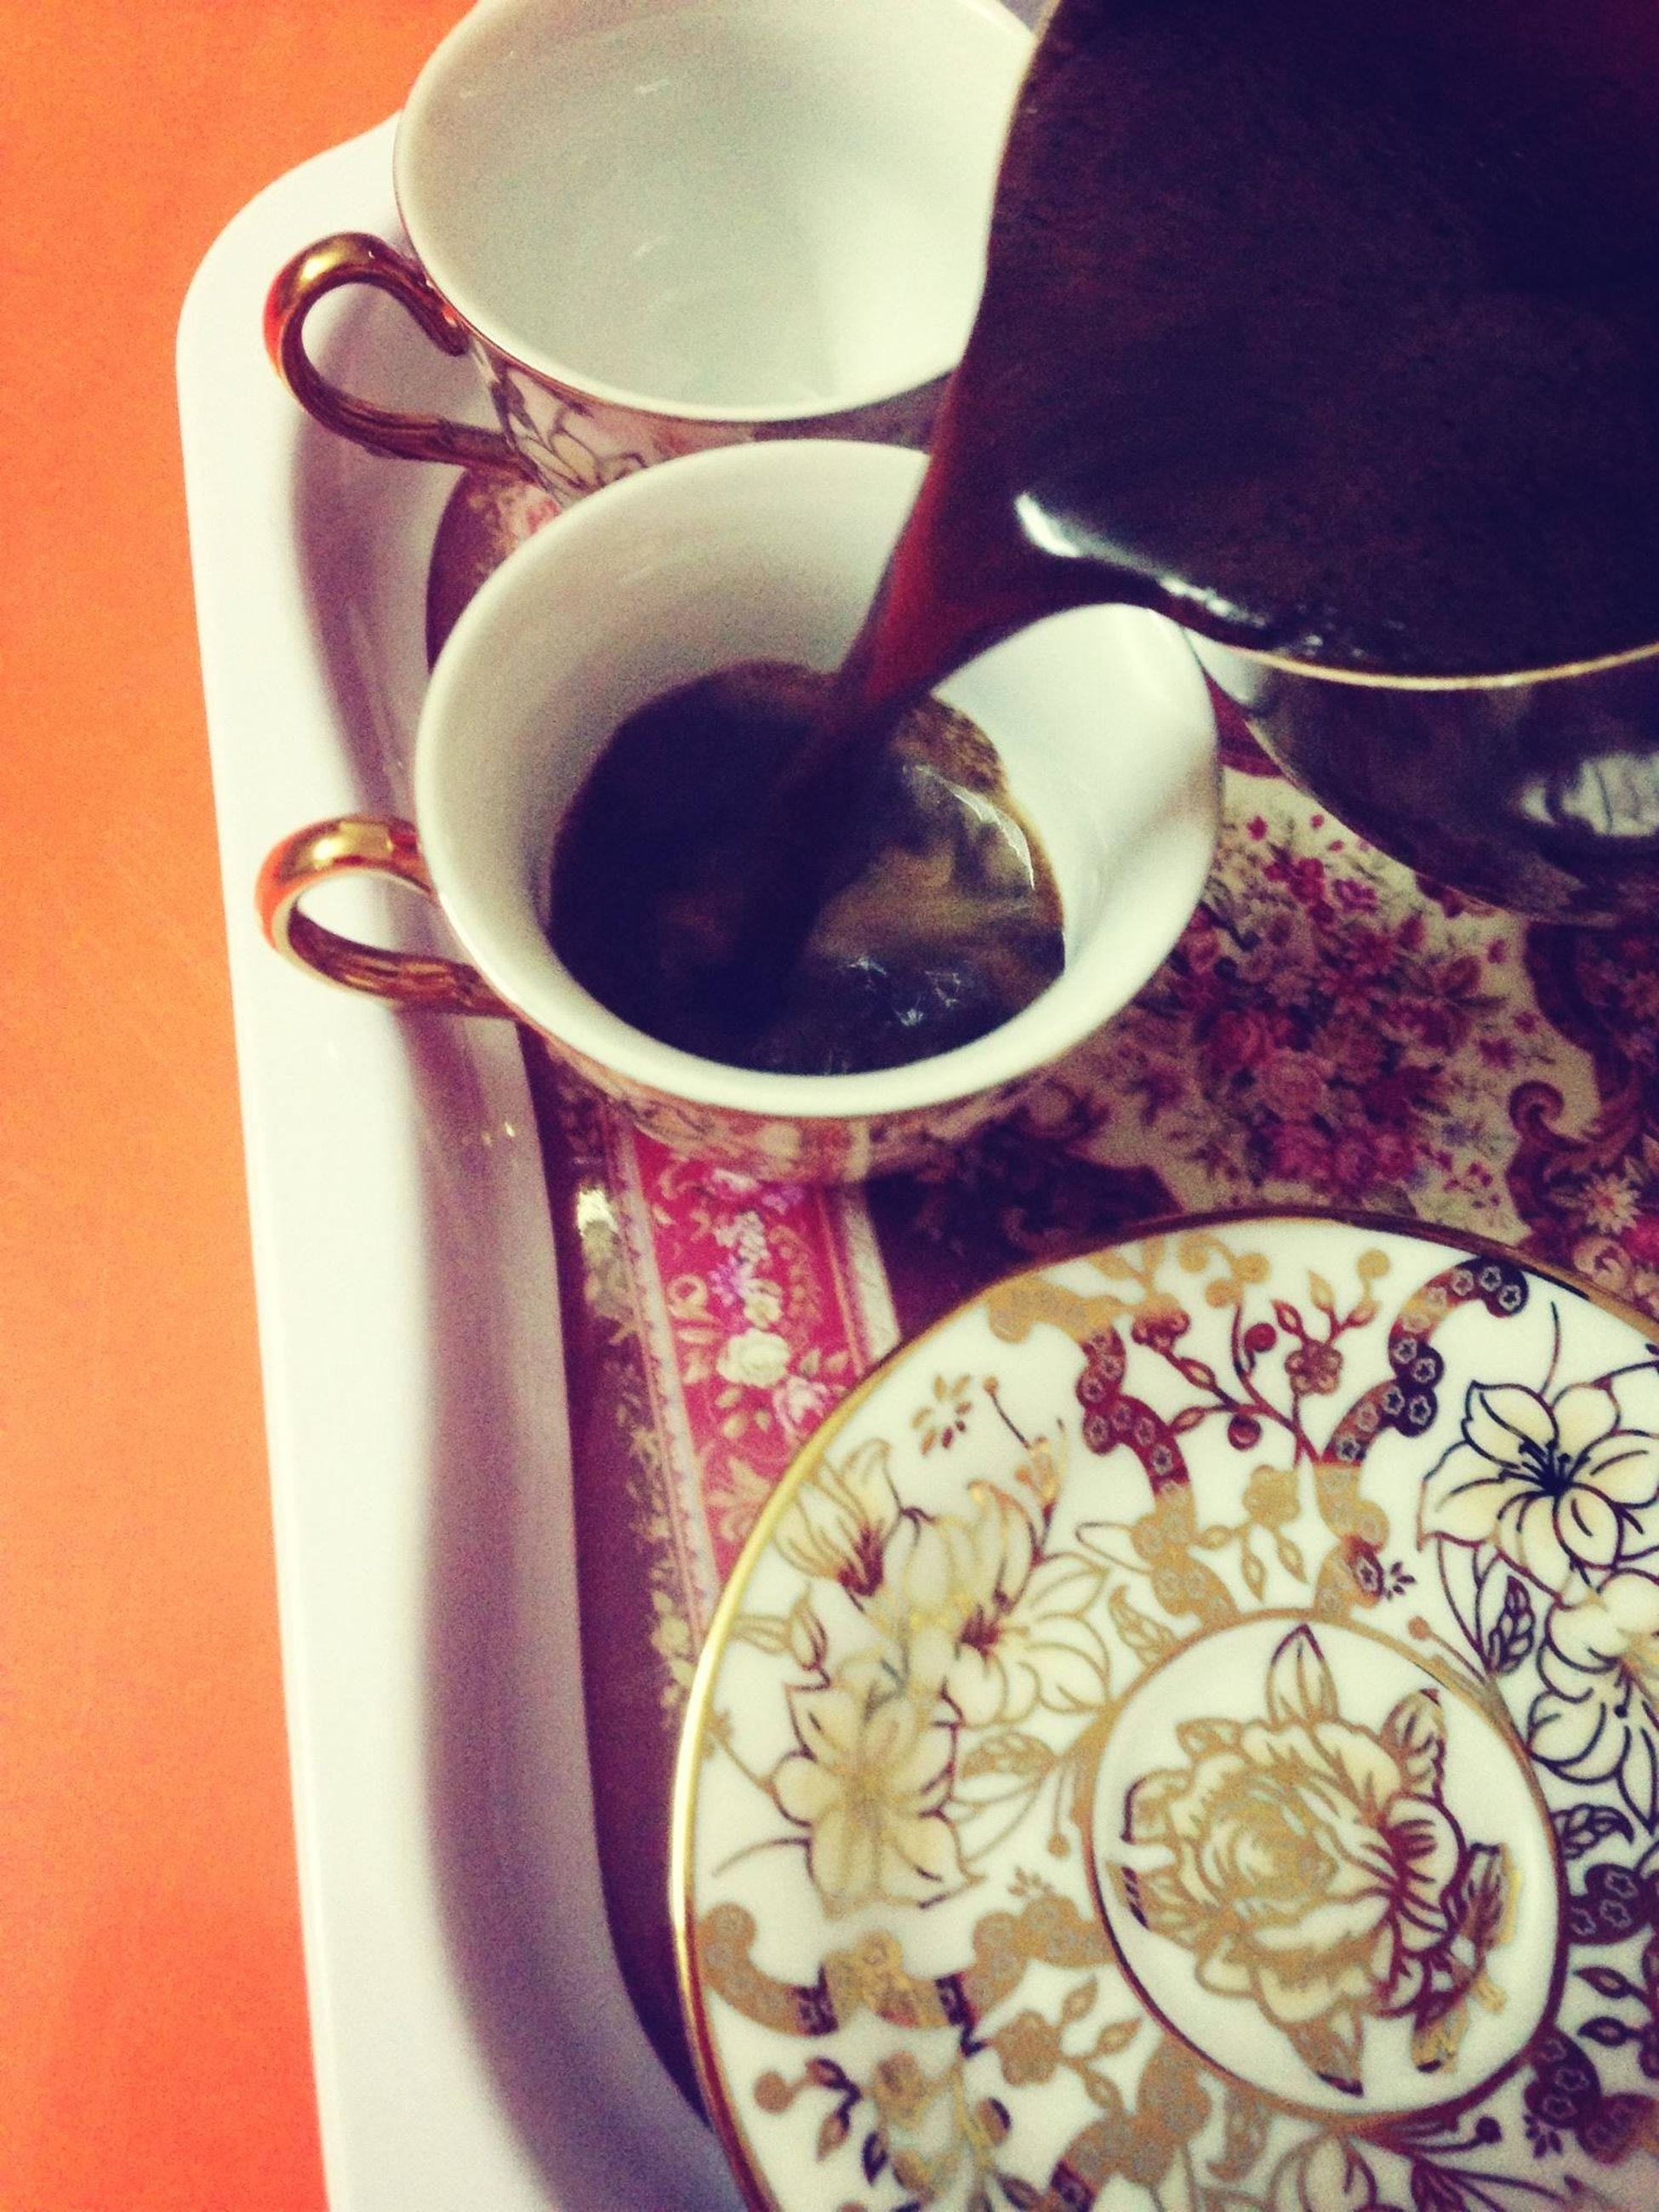 food and drink, drink, indoors, coffee cup, table, refreshment, freshness, coffee - drink, saucer, spoon, cup, coffee, still life, high angle view, tea cup, healthy eating, close-up, bowl, breakfast, frothy drink